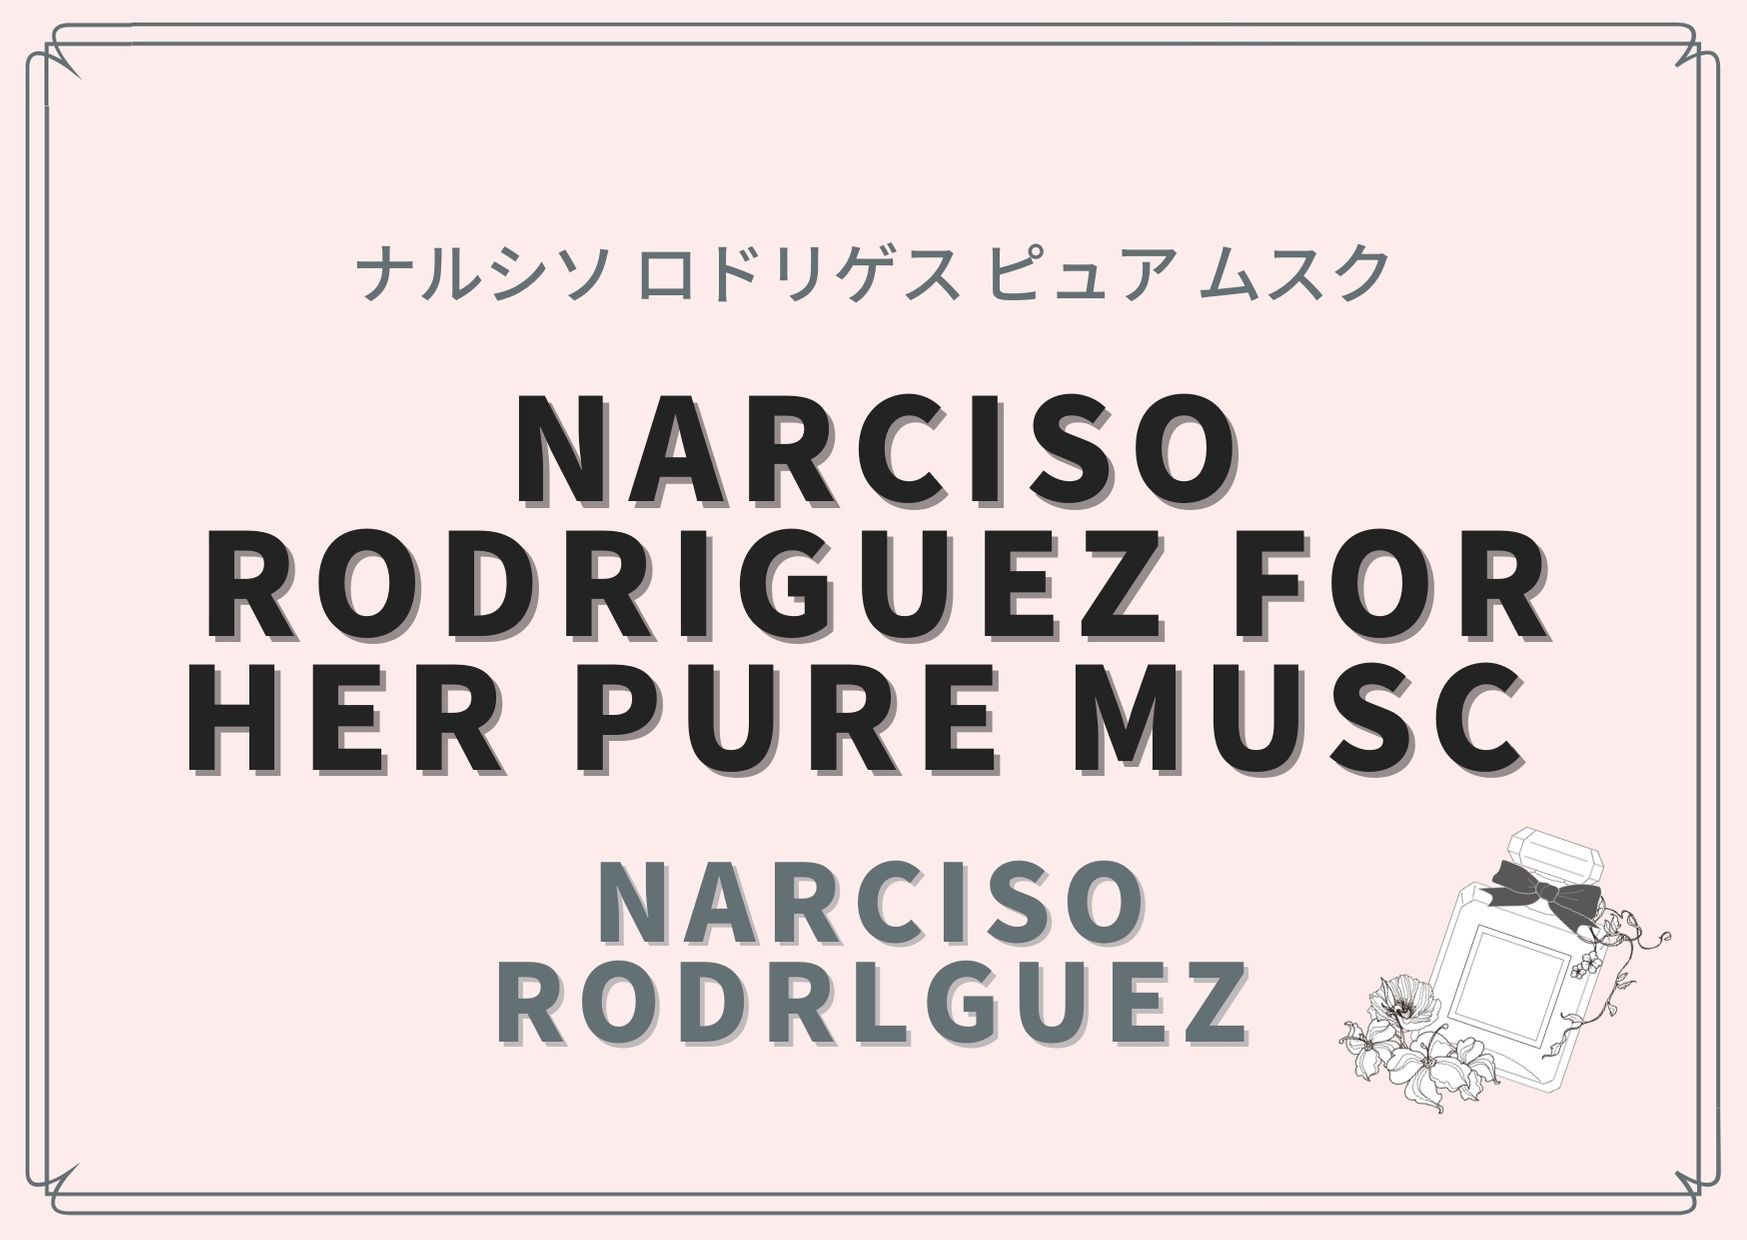 NARCISO RODRIGUEZ FOR HER PURE MUSC  (ナルシソ ロドリゲス ピュア ムスク)/ Narciso Rodrlguez(ナルシソ ロドリゲス)